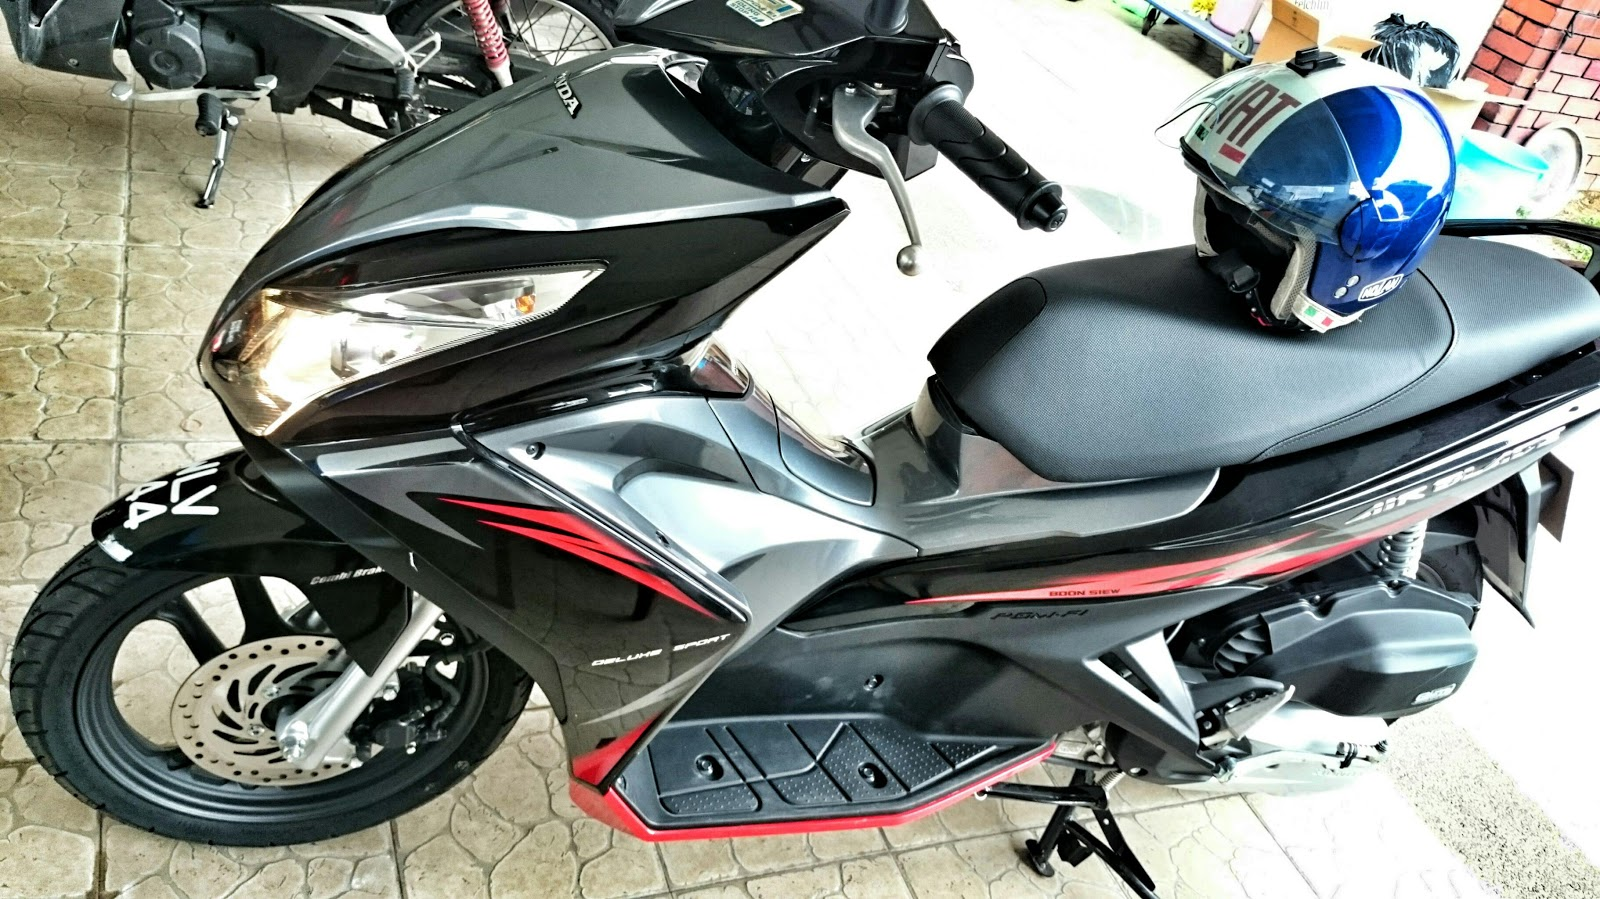 globe nomad rider: just bought honda air blade for town riding